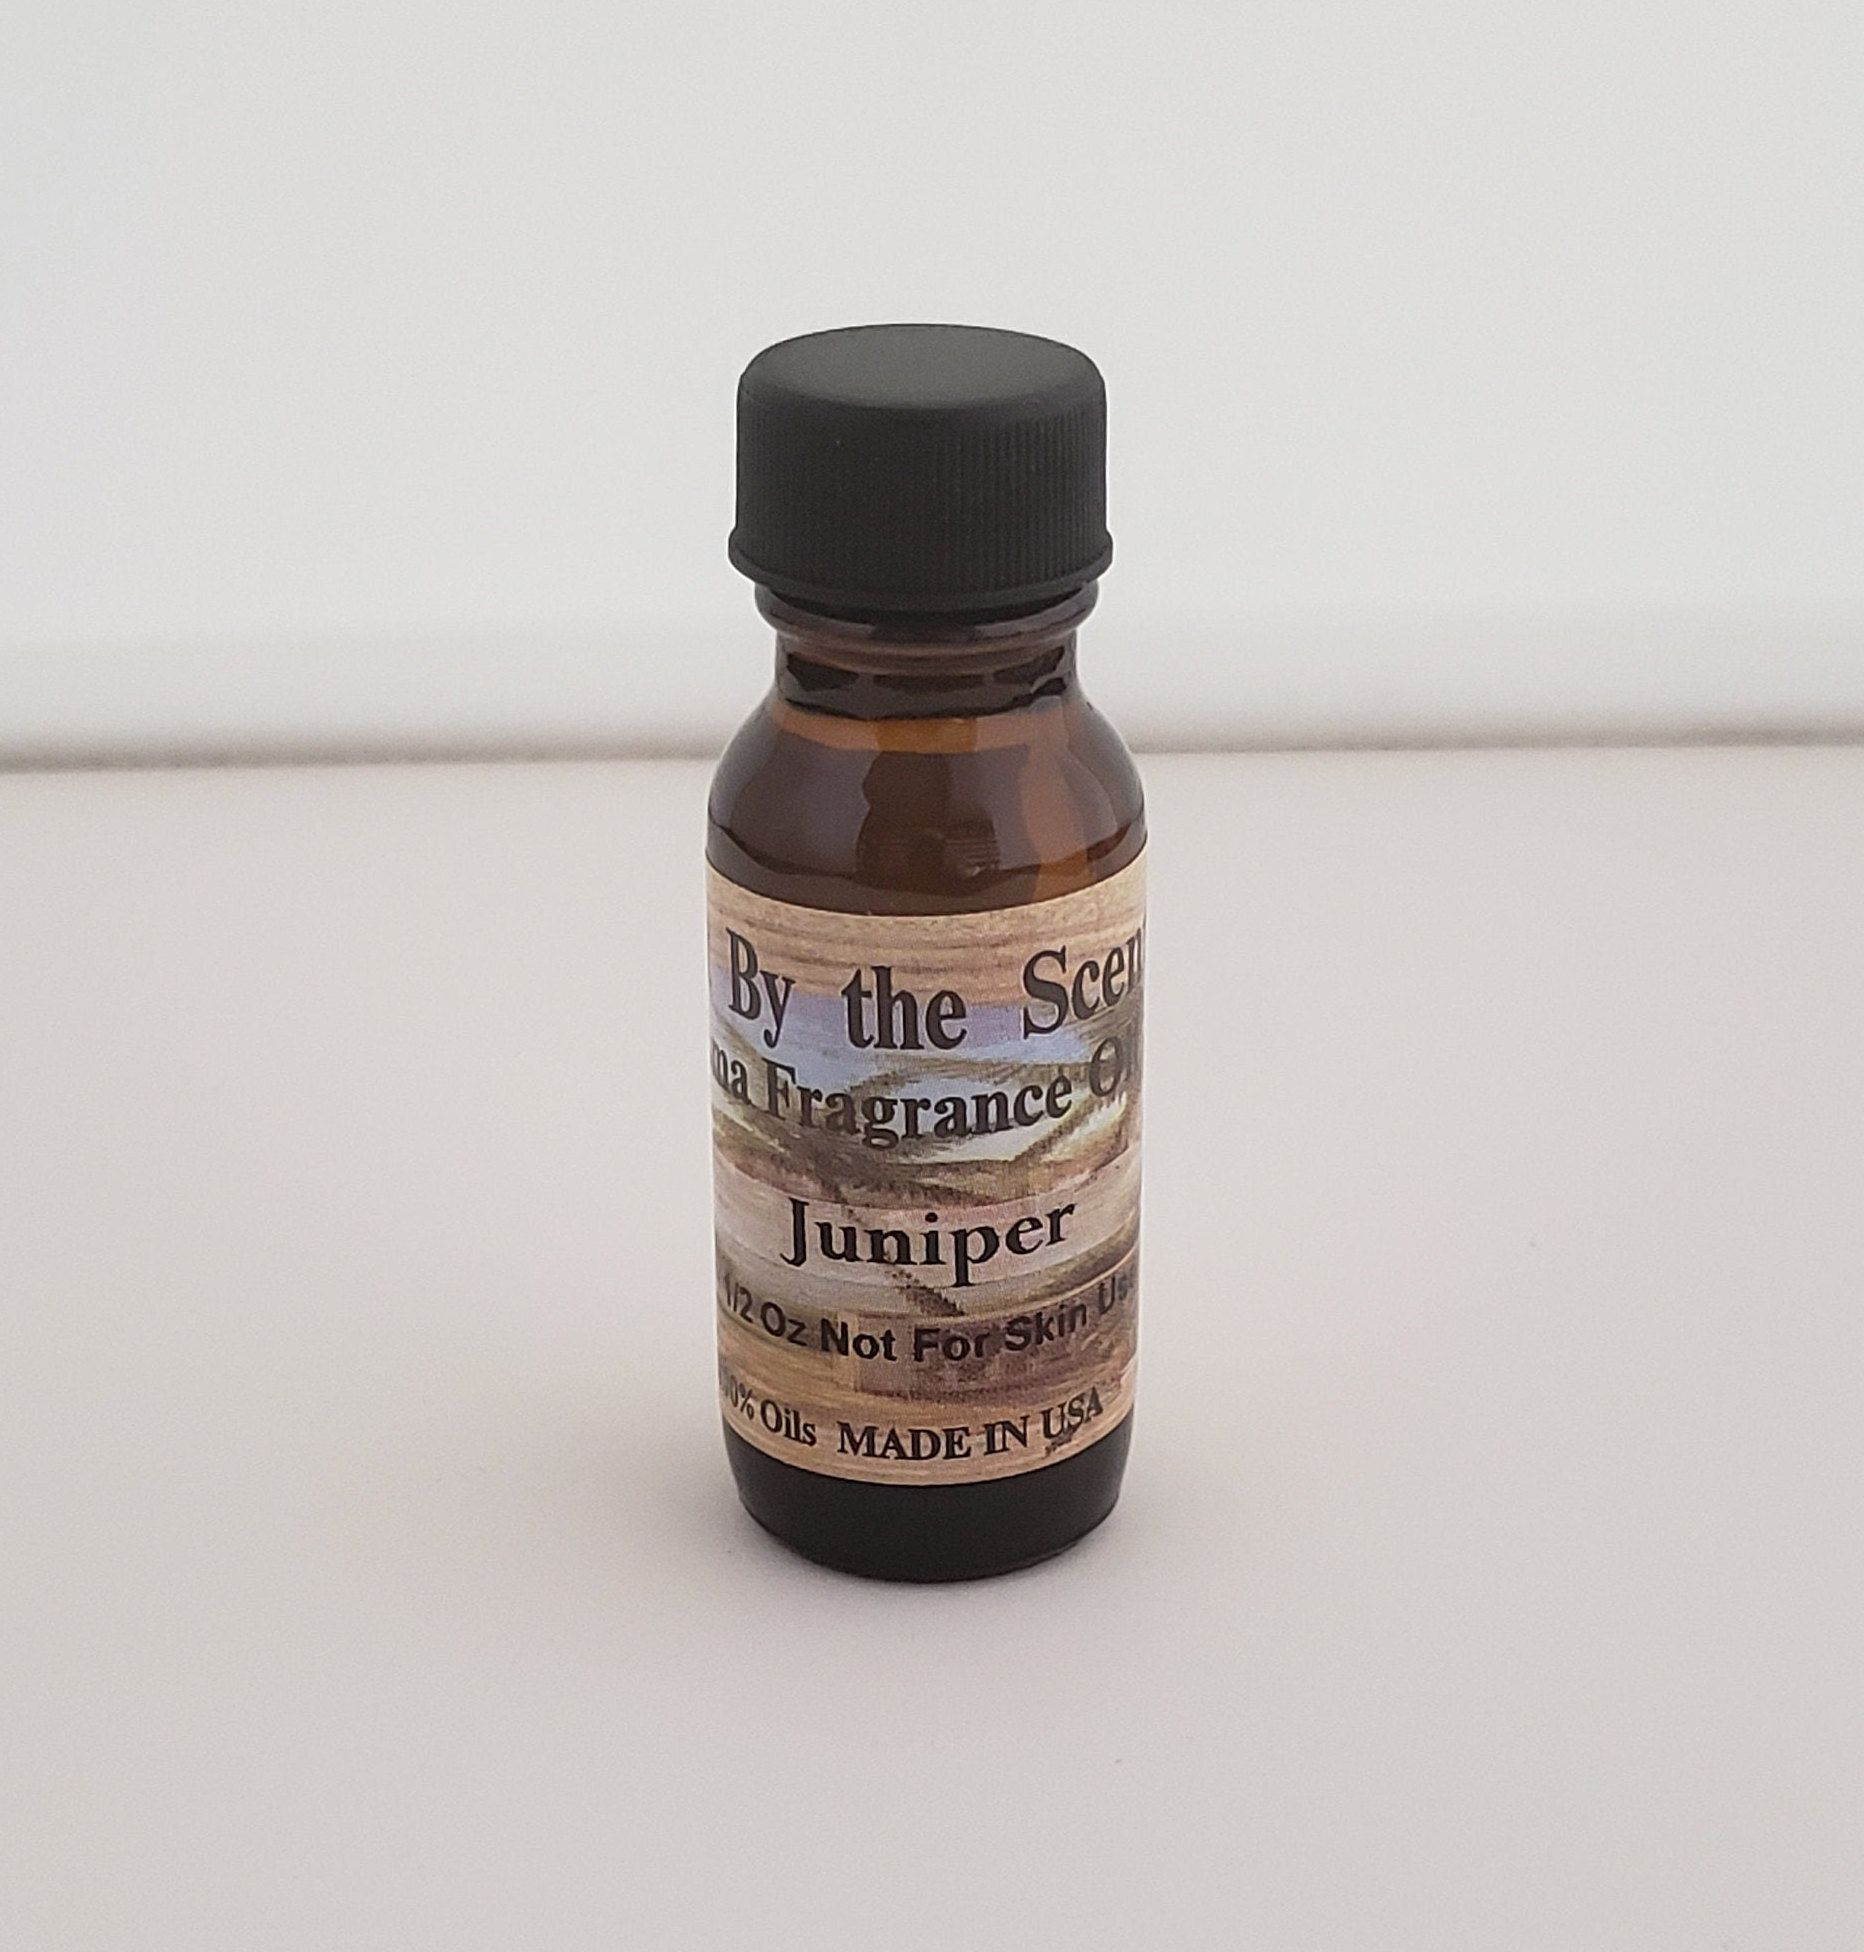 Juniper Aroma Fragrance Oil Just By The Scents 1 2 Ounce Bottle 100 Oil Made In Usa Fragrance Oil Fragrance Scents